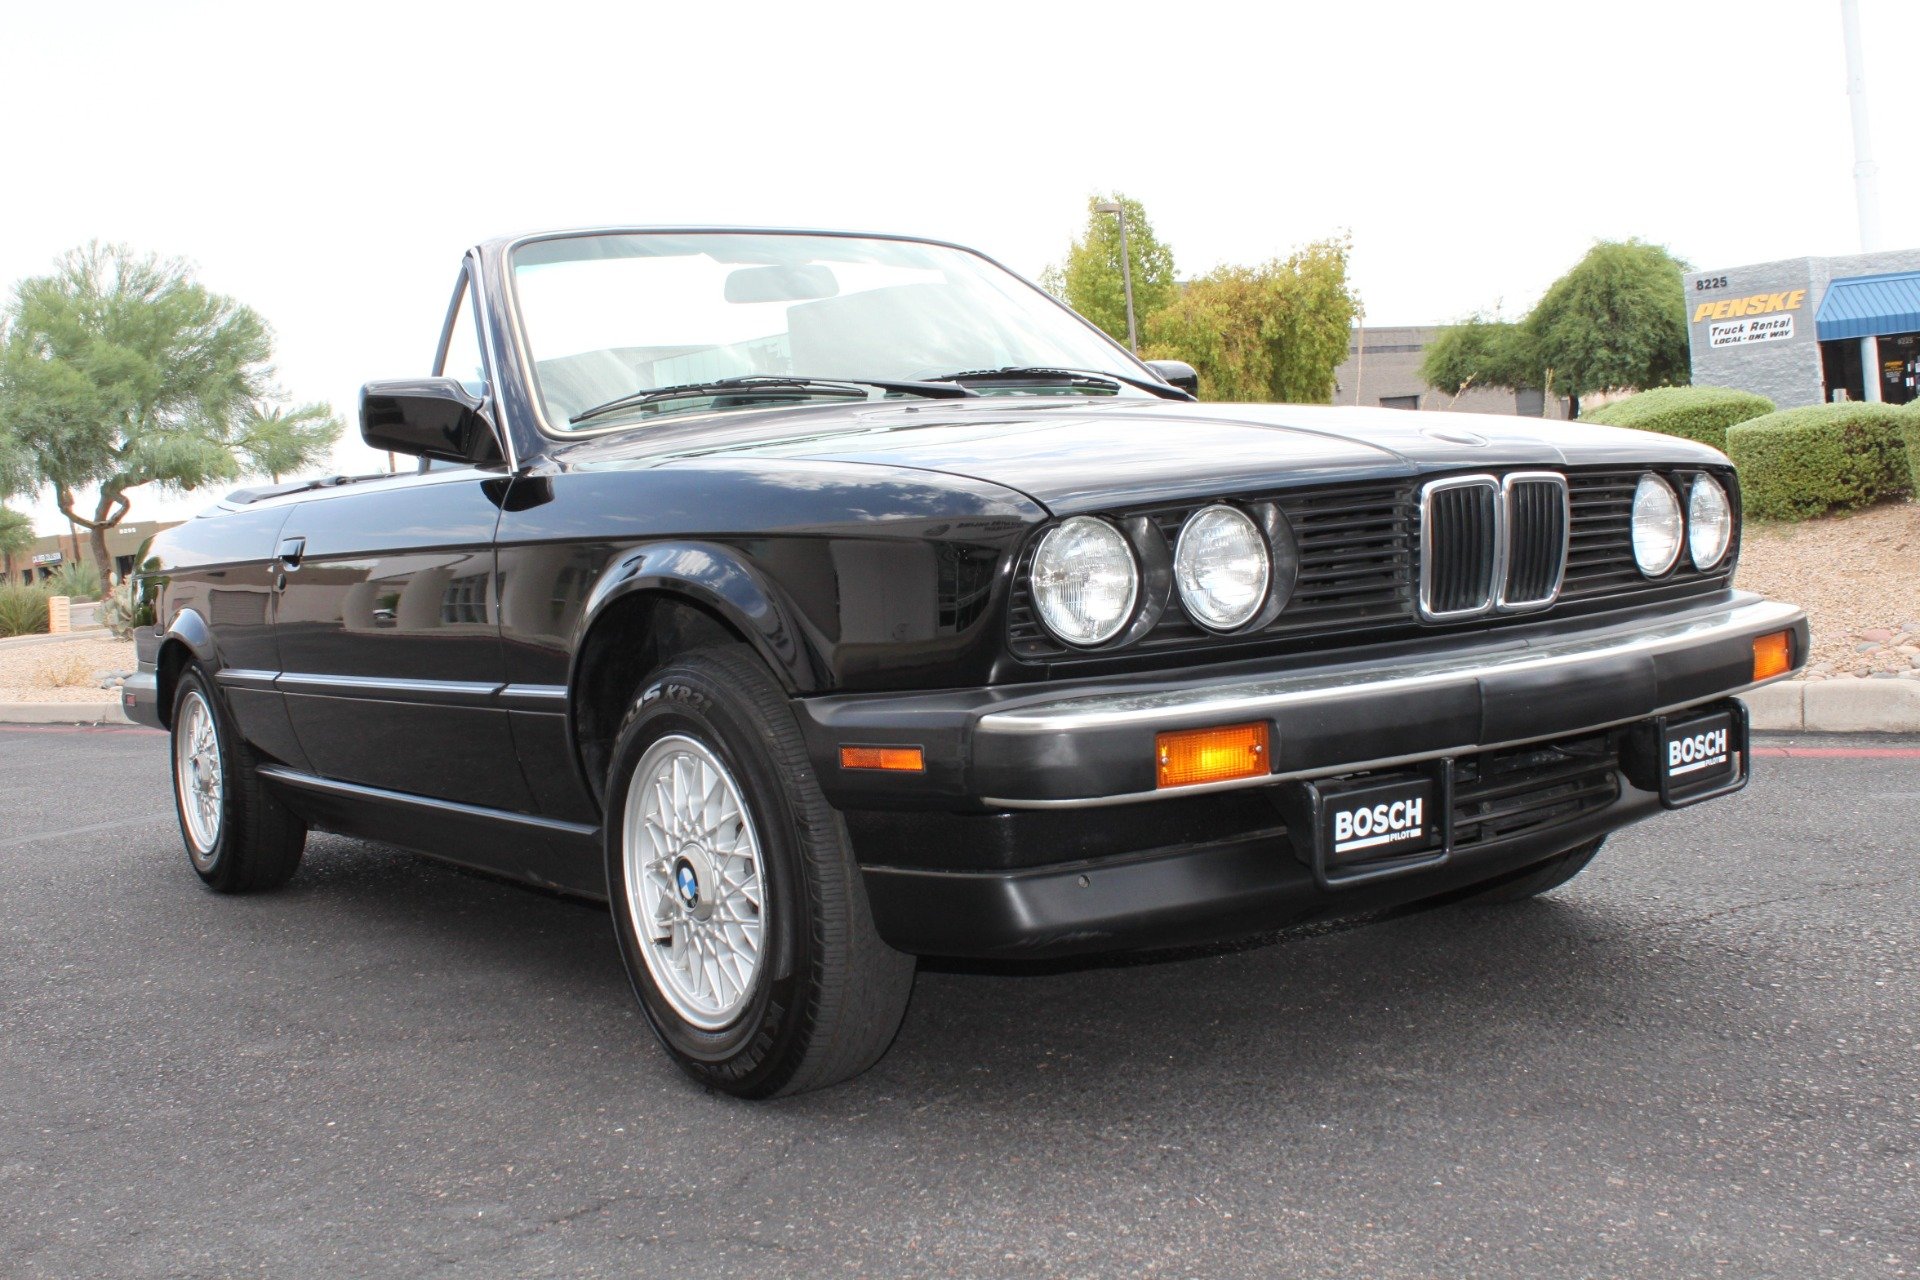 Used-1990-BMW-3-Series-325iC-Mercedes-Benz